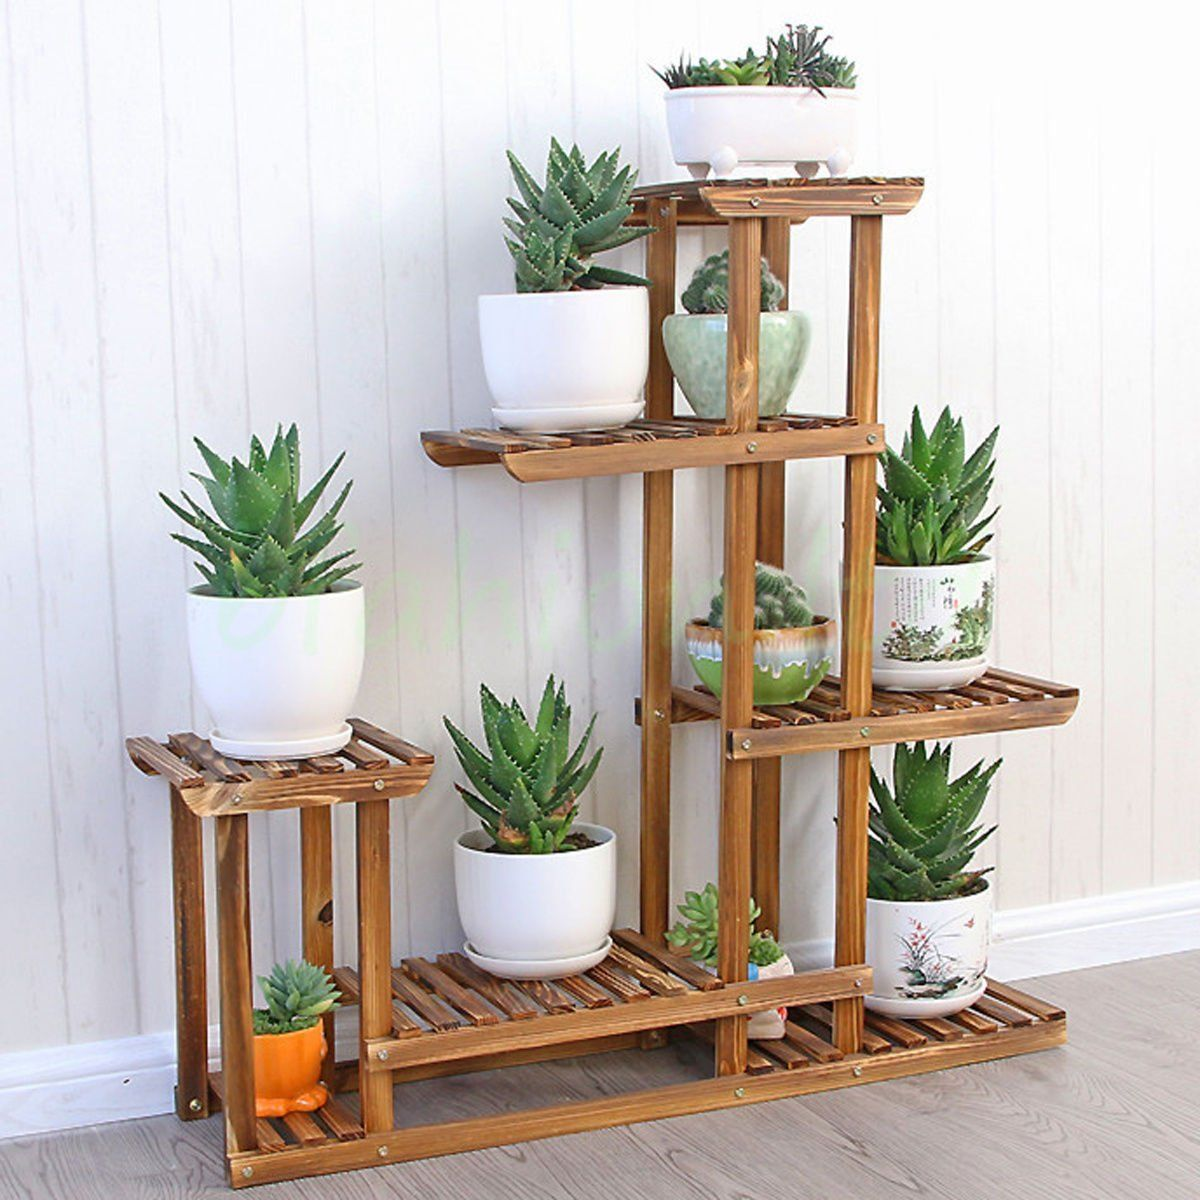 Malayas wooden plant flower display stand wood pot shelf Plant stands for indoors